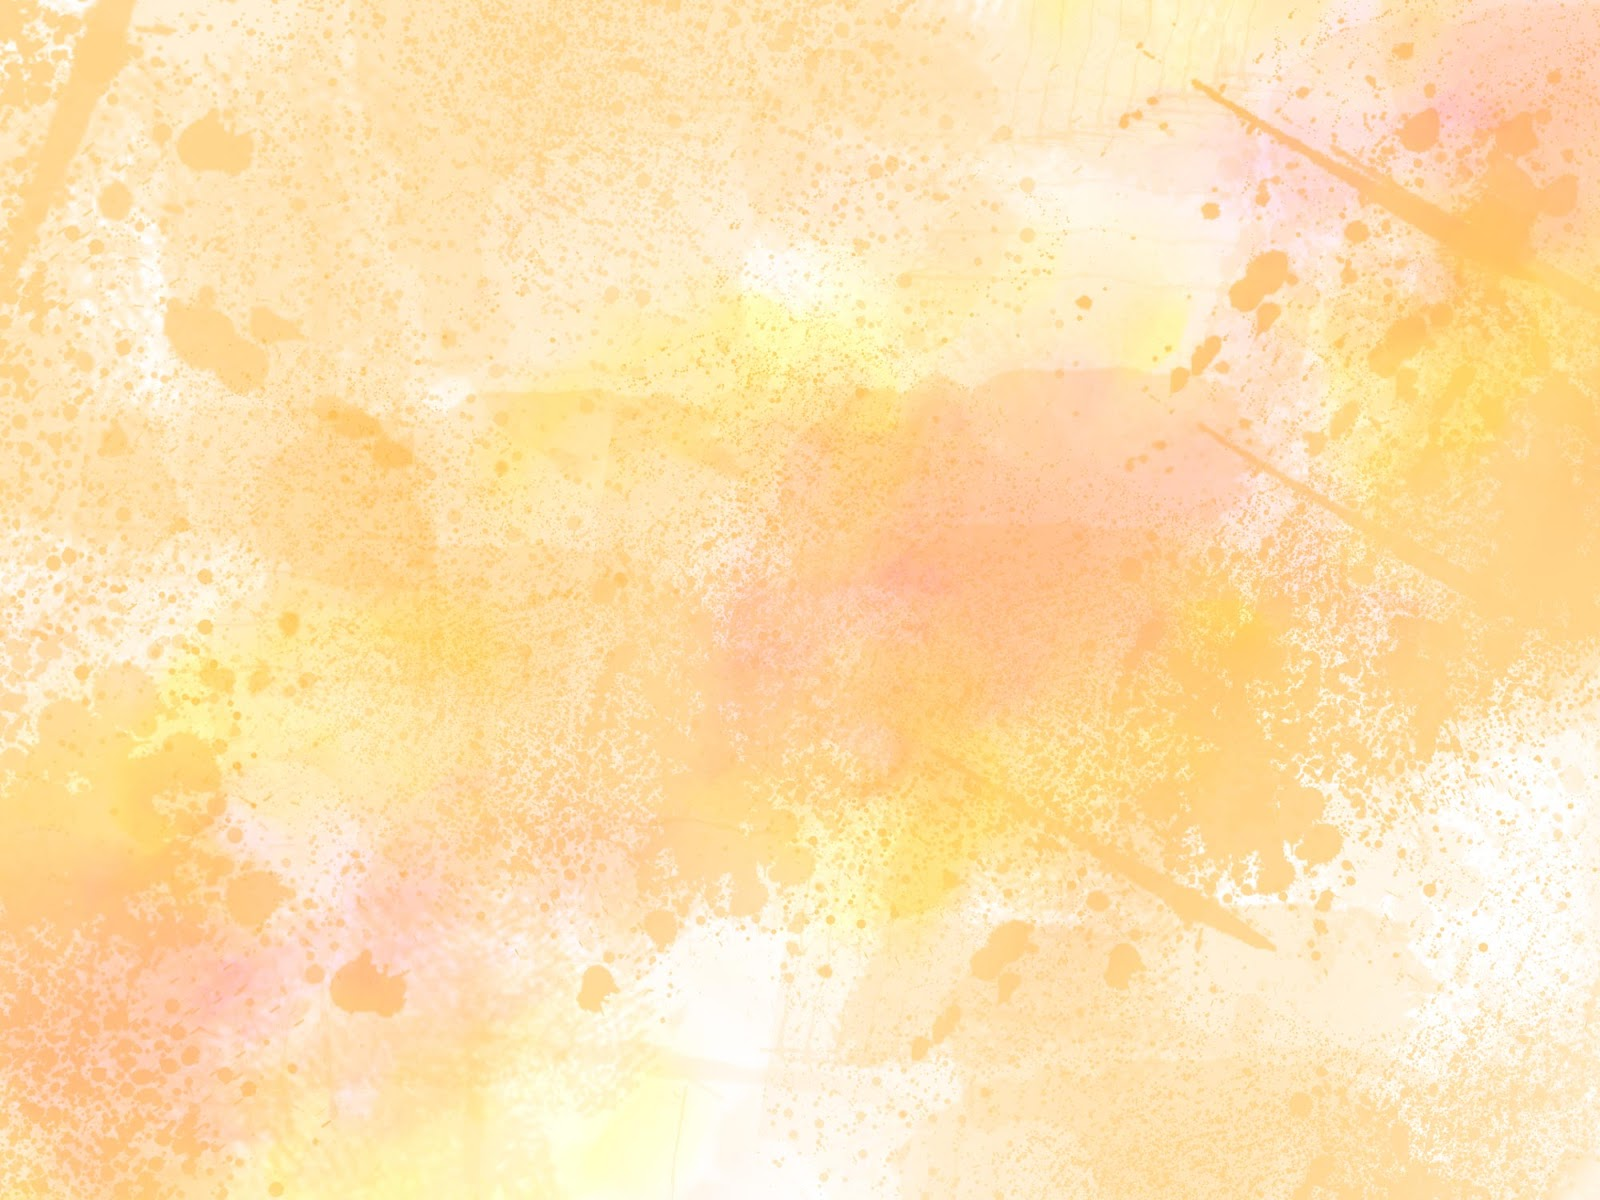 1600x1200 Pastel-orange-grunge-background-with-yellow-and-pink ...